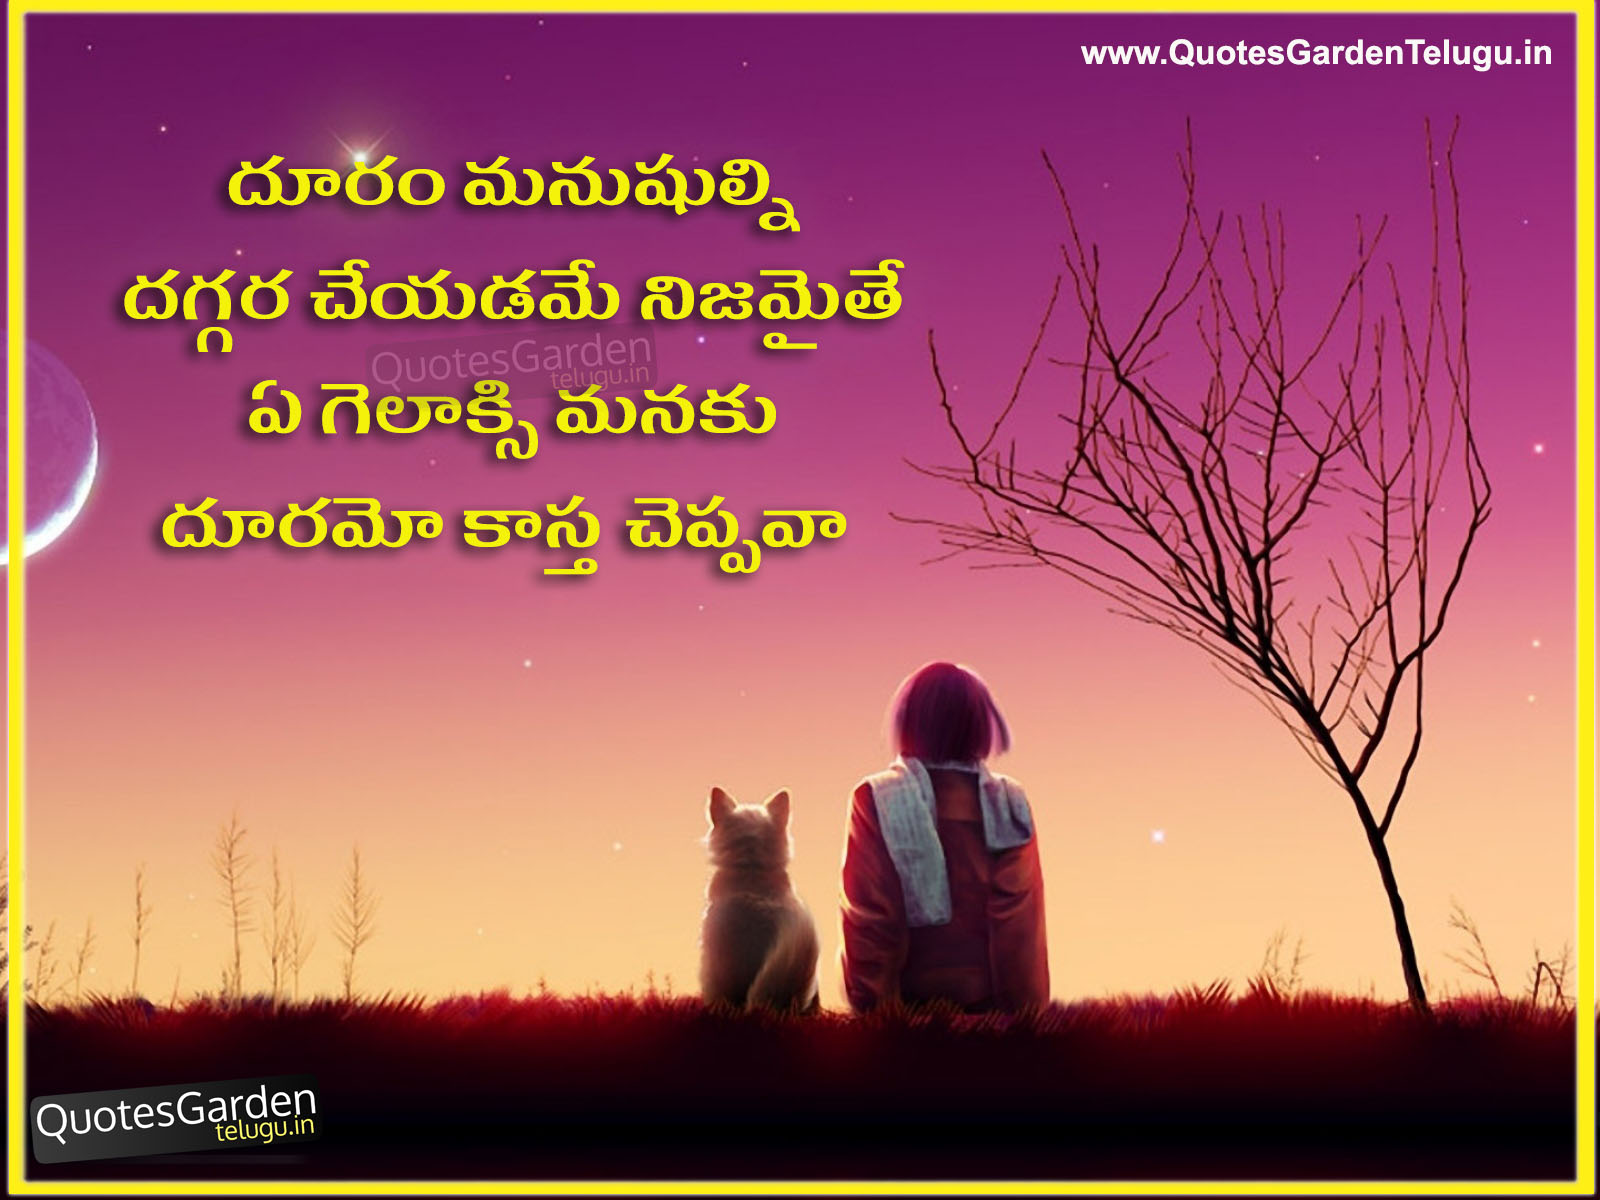 New English Love Wallpaper : Latest Telugu love quotes with hdwallpapers QUOTES GARDEN TELUGU Telugu Quotes English ...